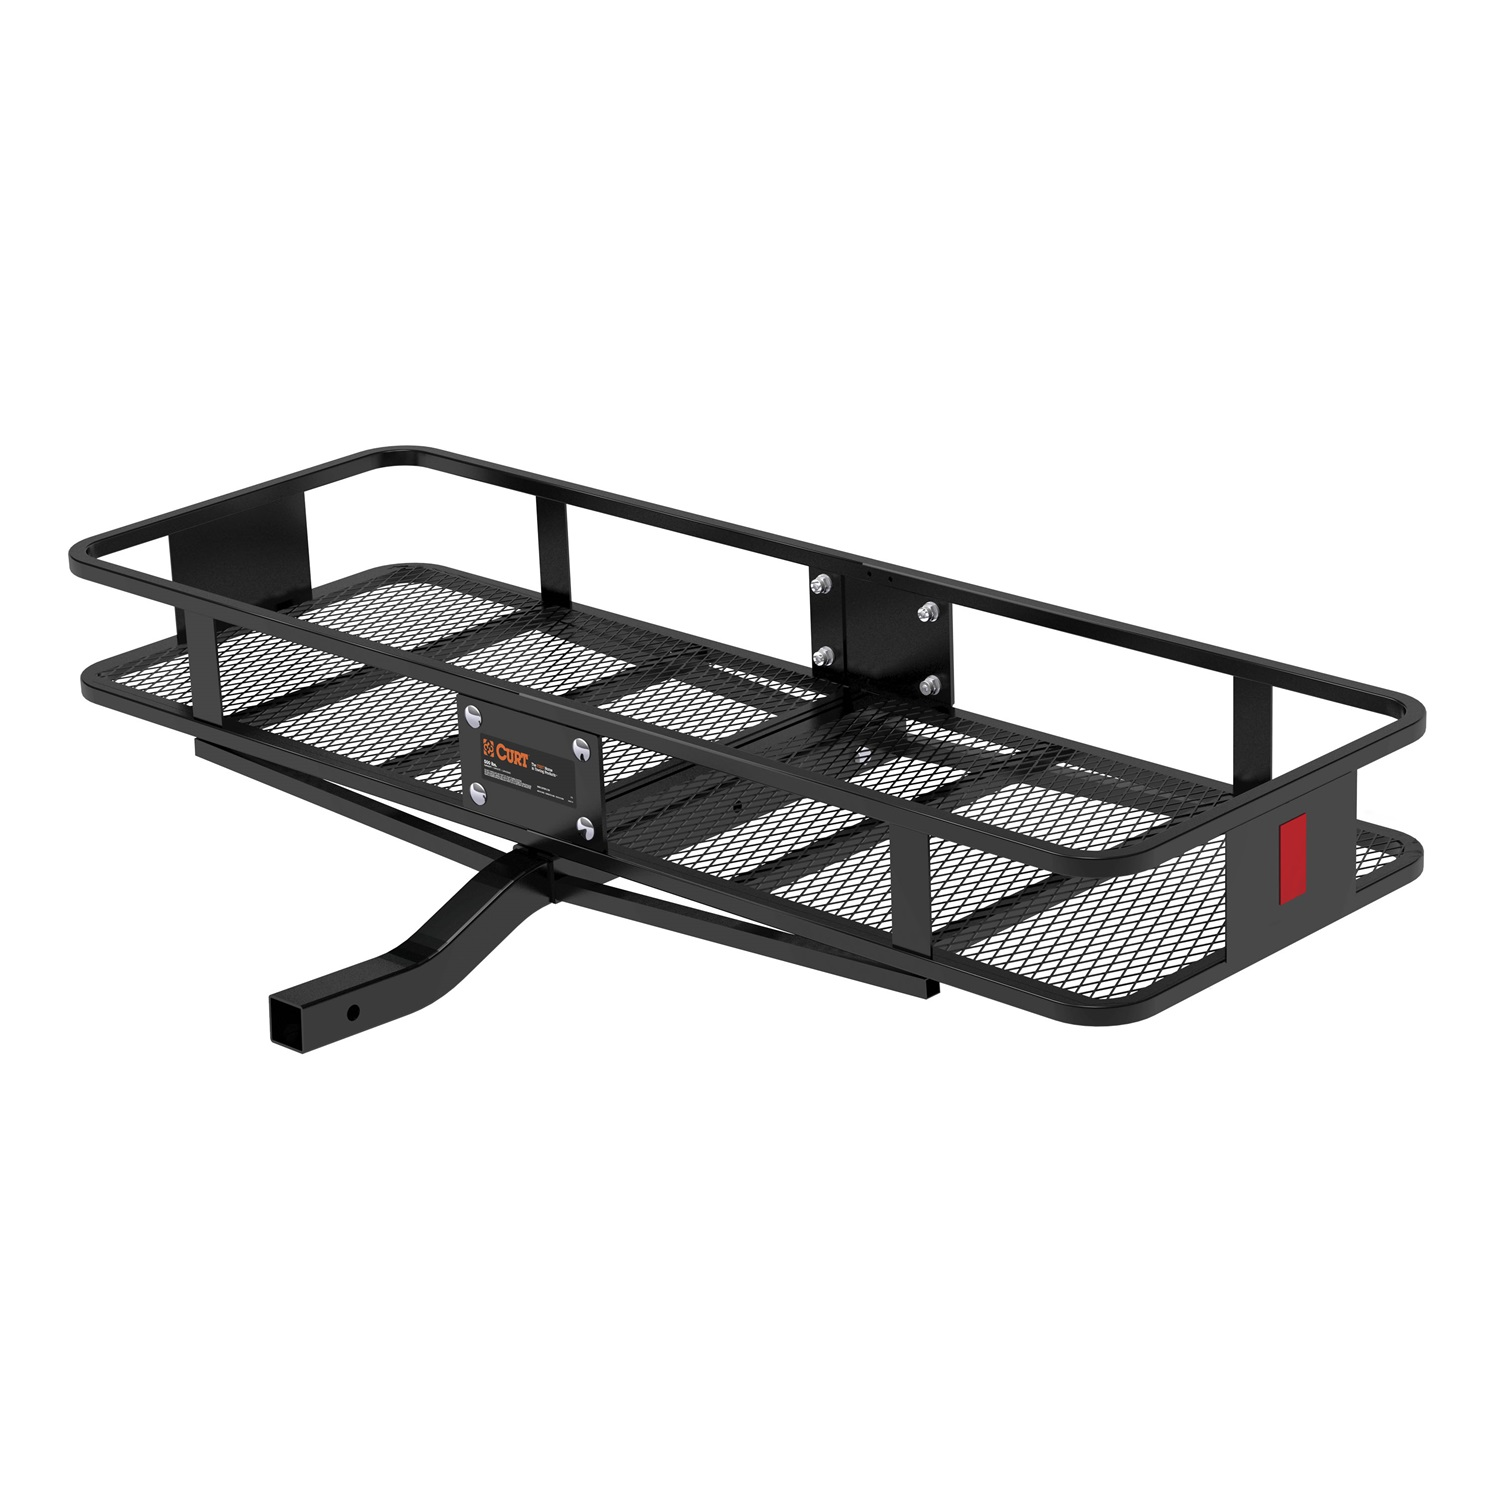 "Curt Manufacturing Cur18150 60"" x 20"" with 6"" Rails Class III Cargo Carrier Basket Fixed Shank"